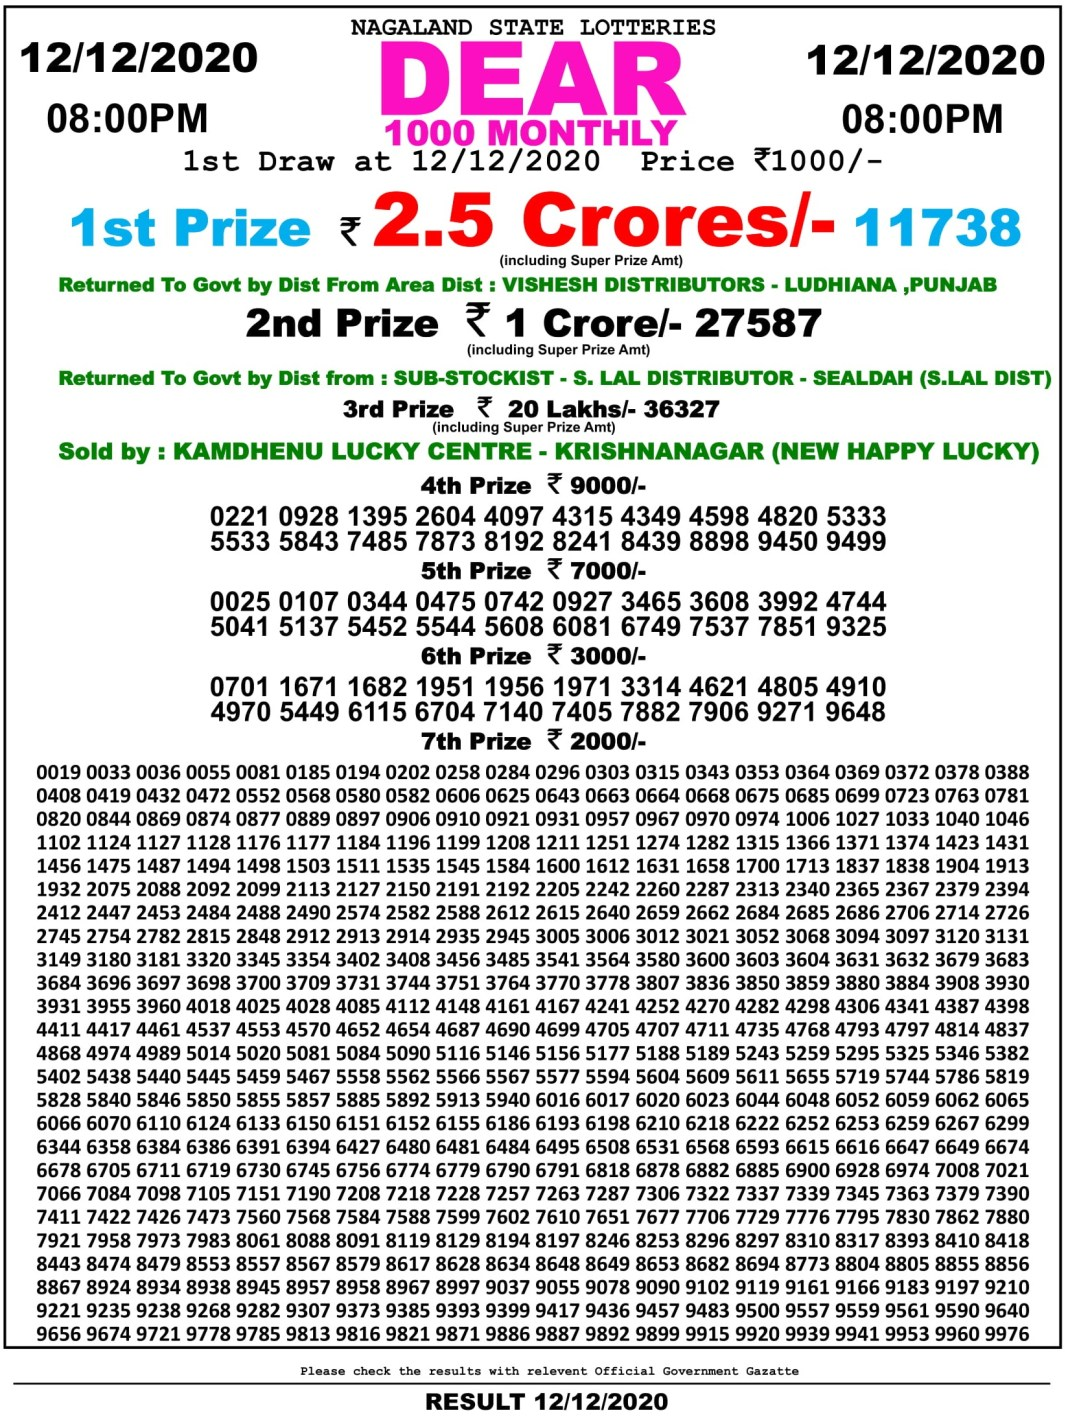 Nagaland Dear 1000 Monthly Lottery Result 8 PM 12.12.2020